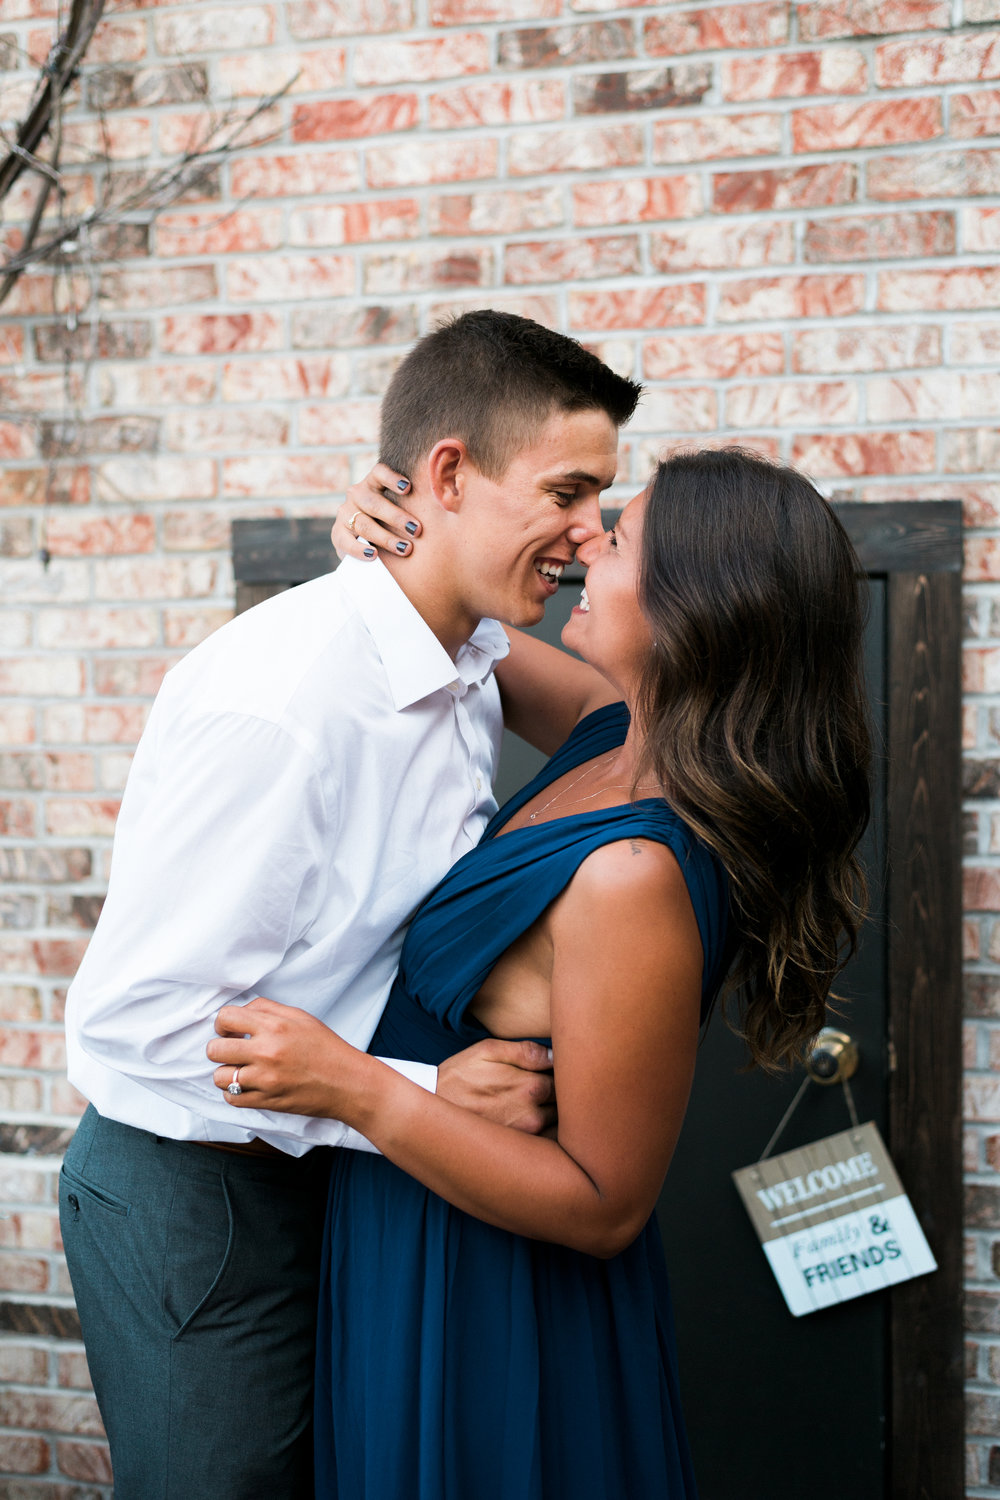 Engaged couple faces each other and laughs while rubbing noses in front of a brick wall.